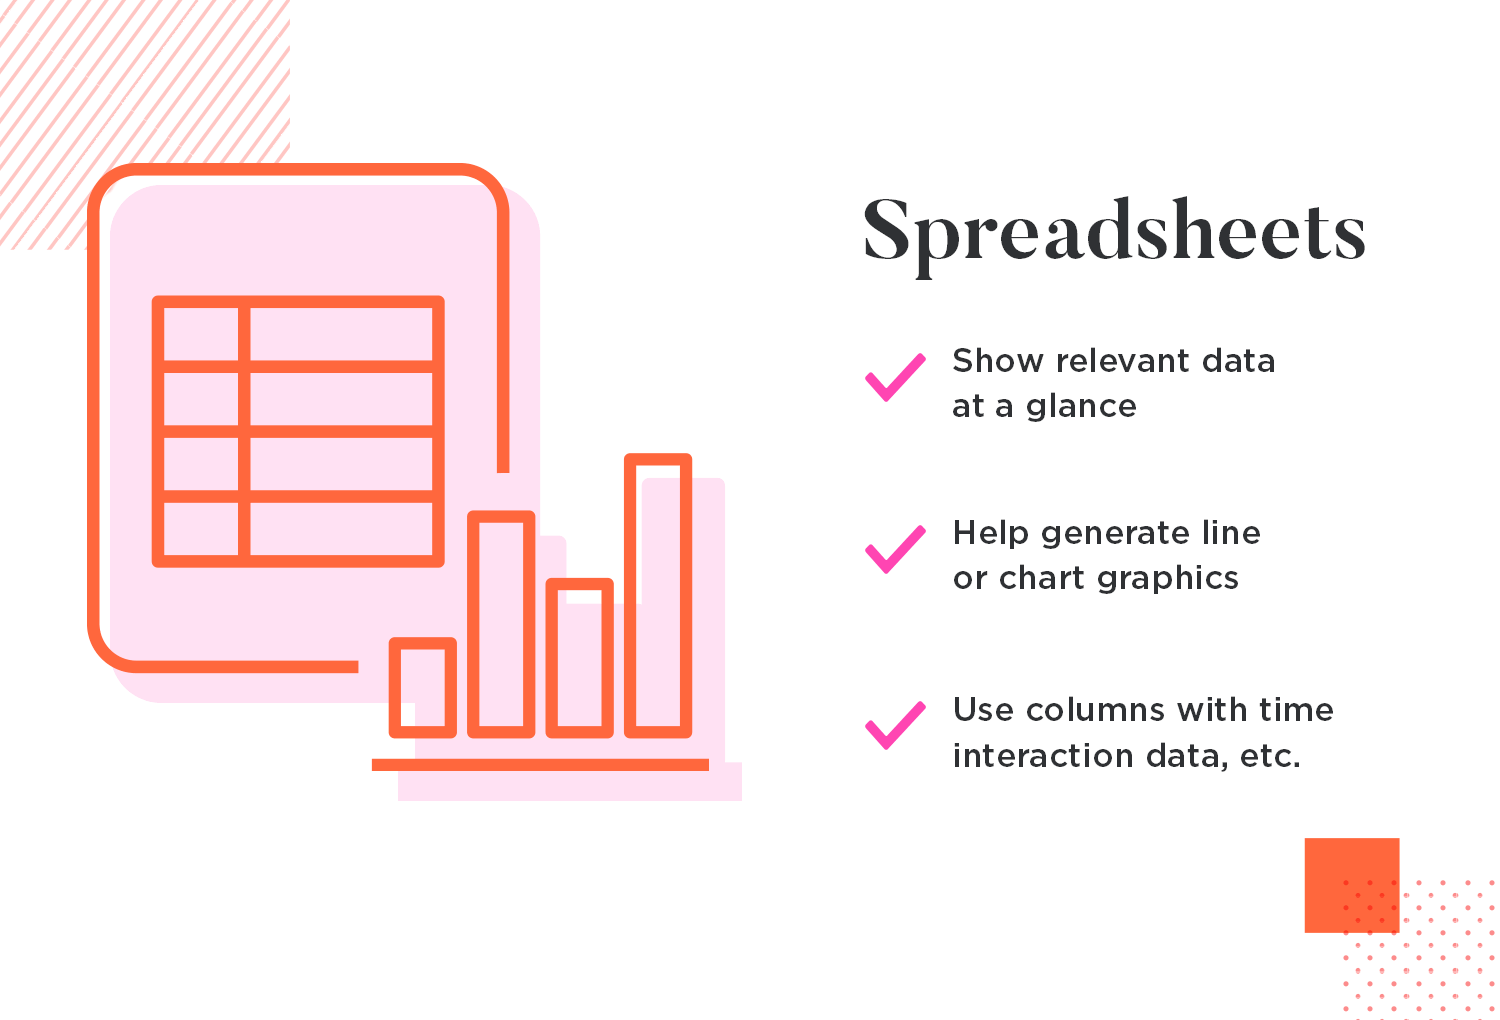 User personas - use spreadhseets to gather research data